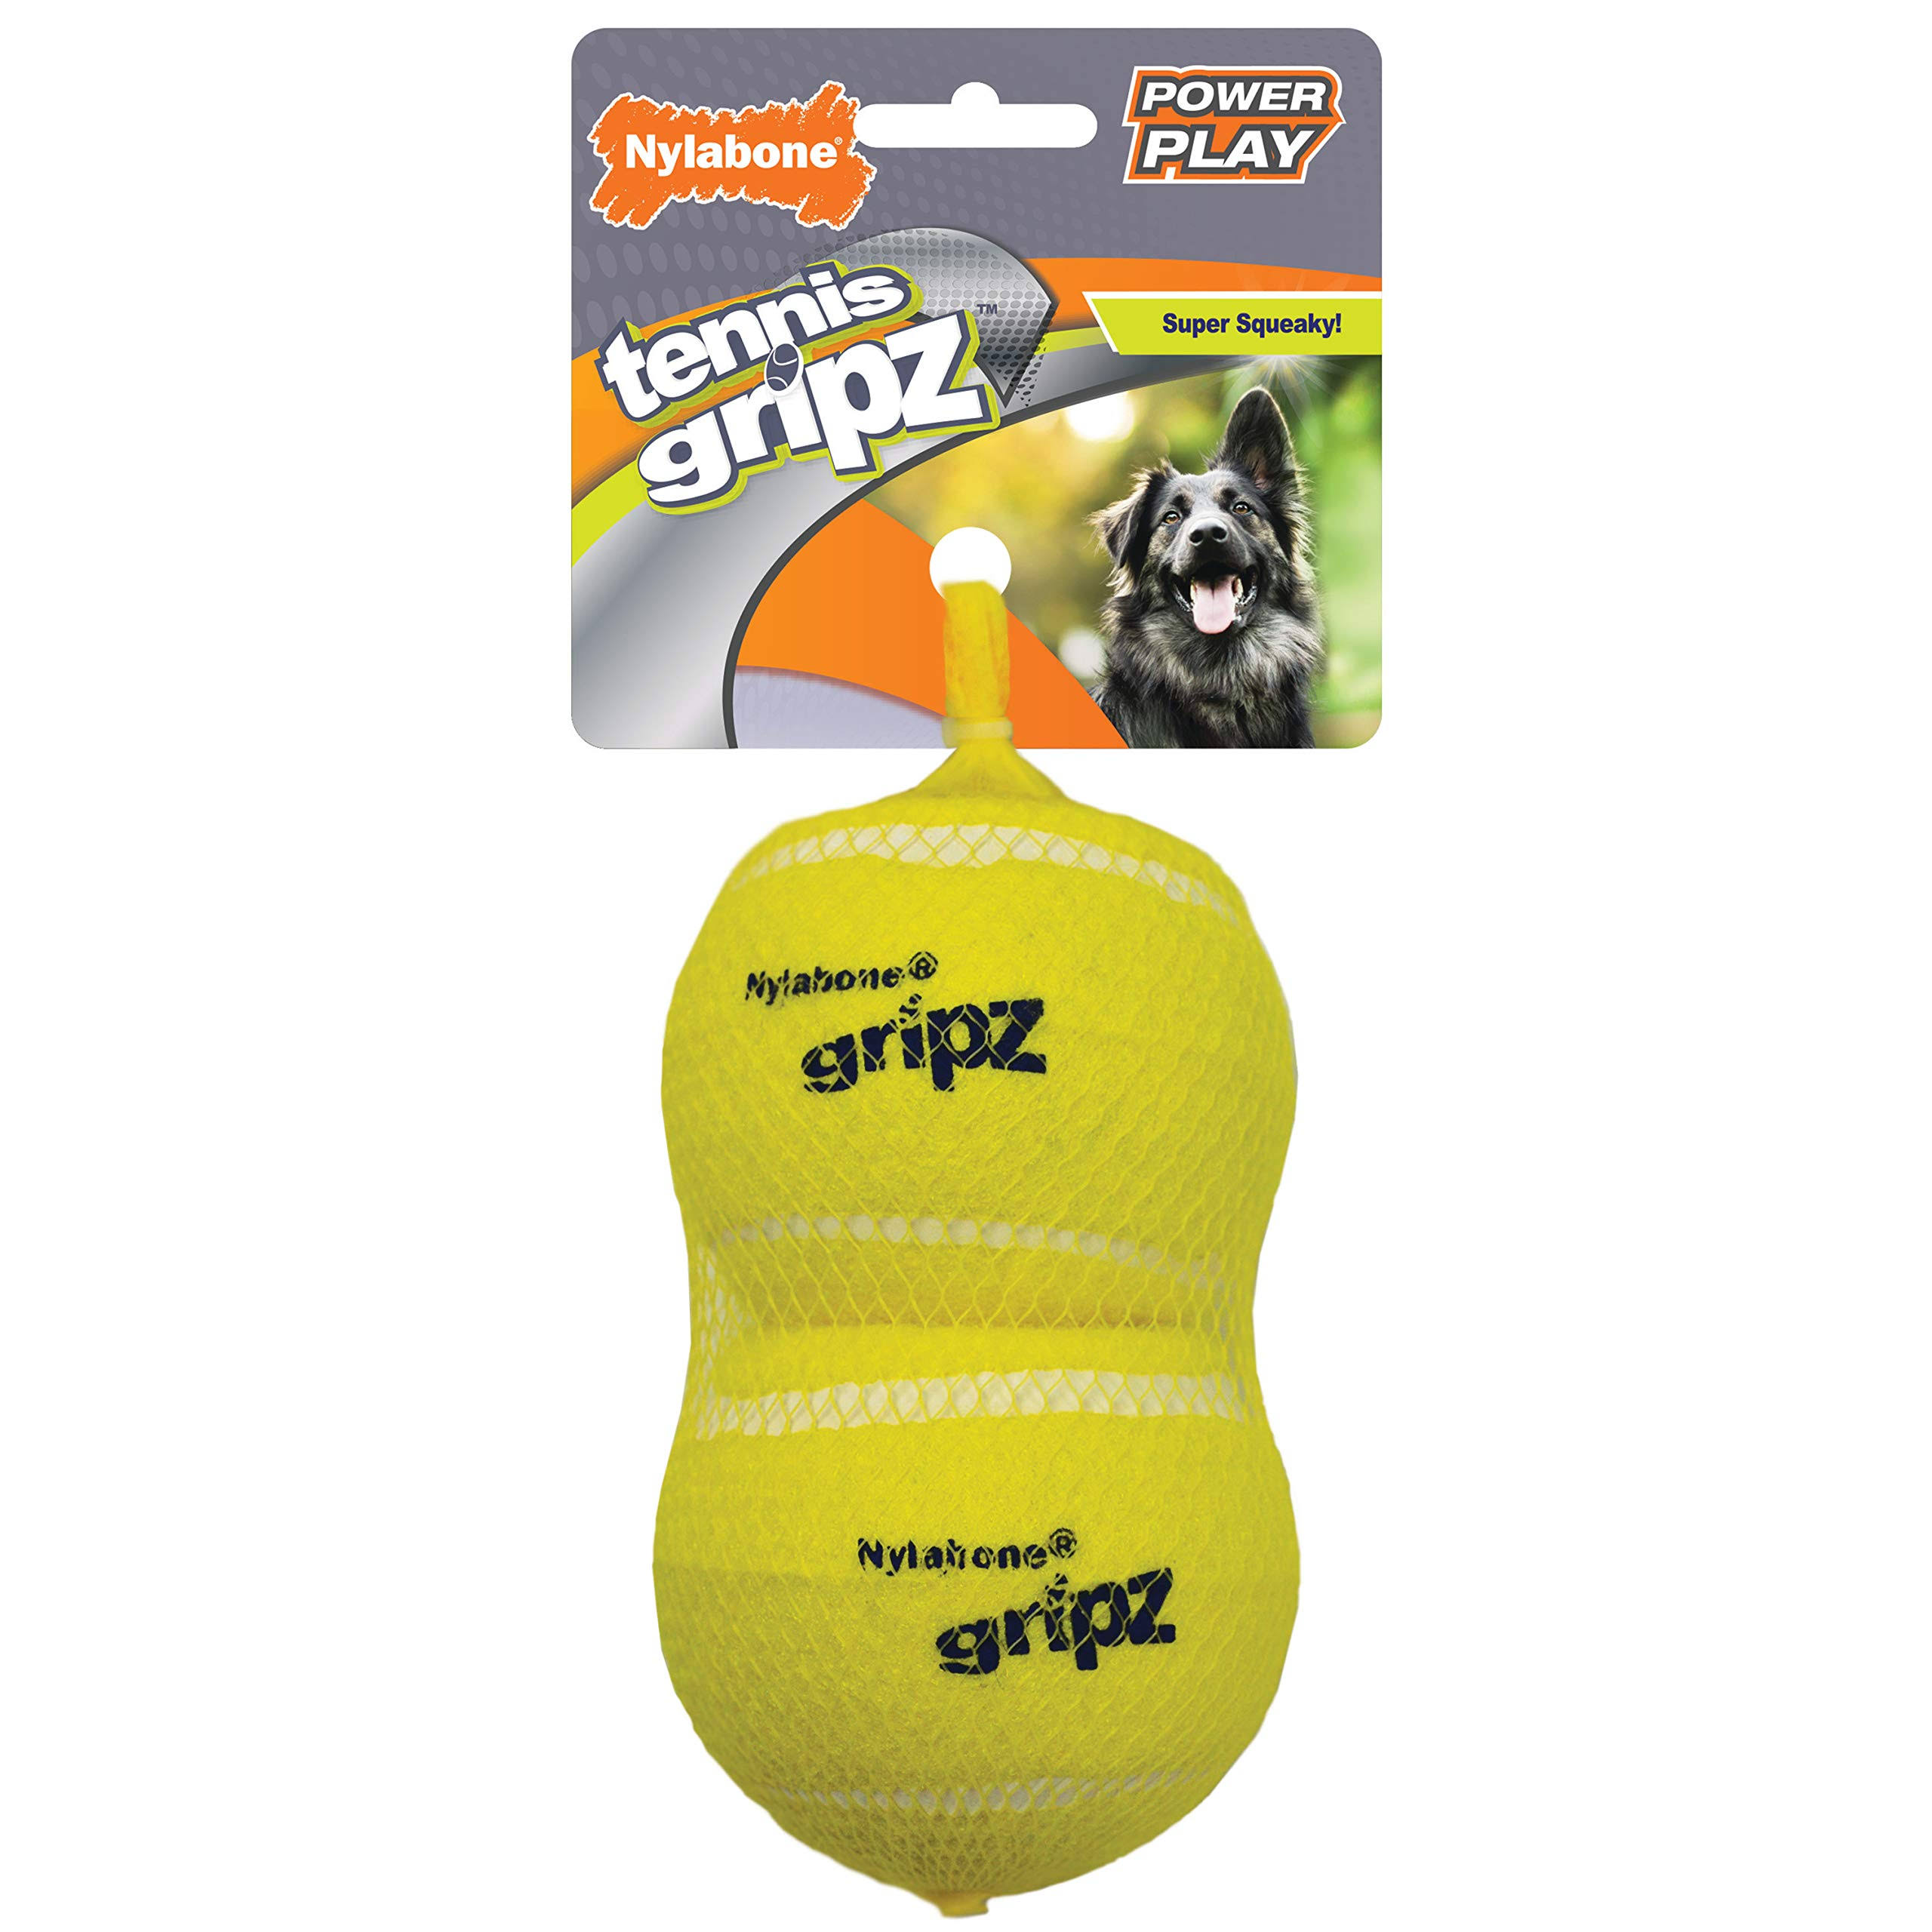 Nylabone NPLY005P Power Play Tennis Gripz Ball, Yellow, Large/2 Pk